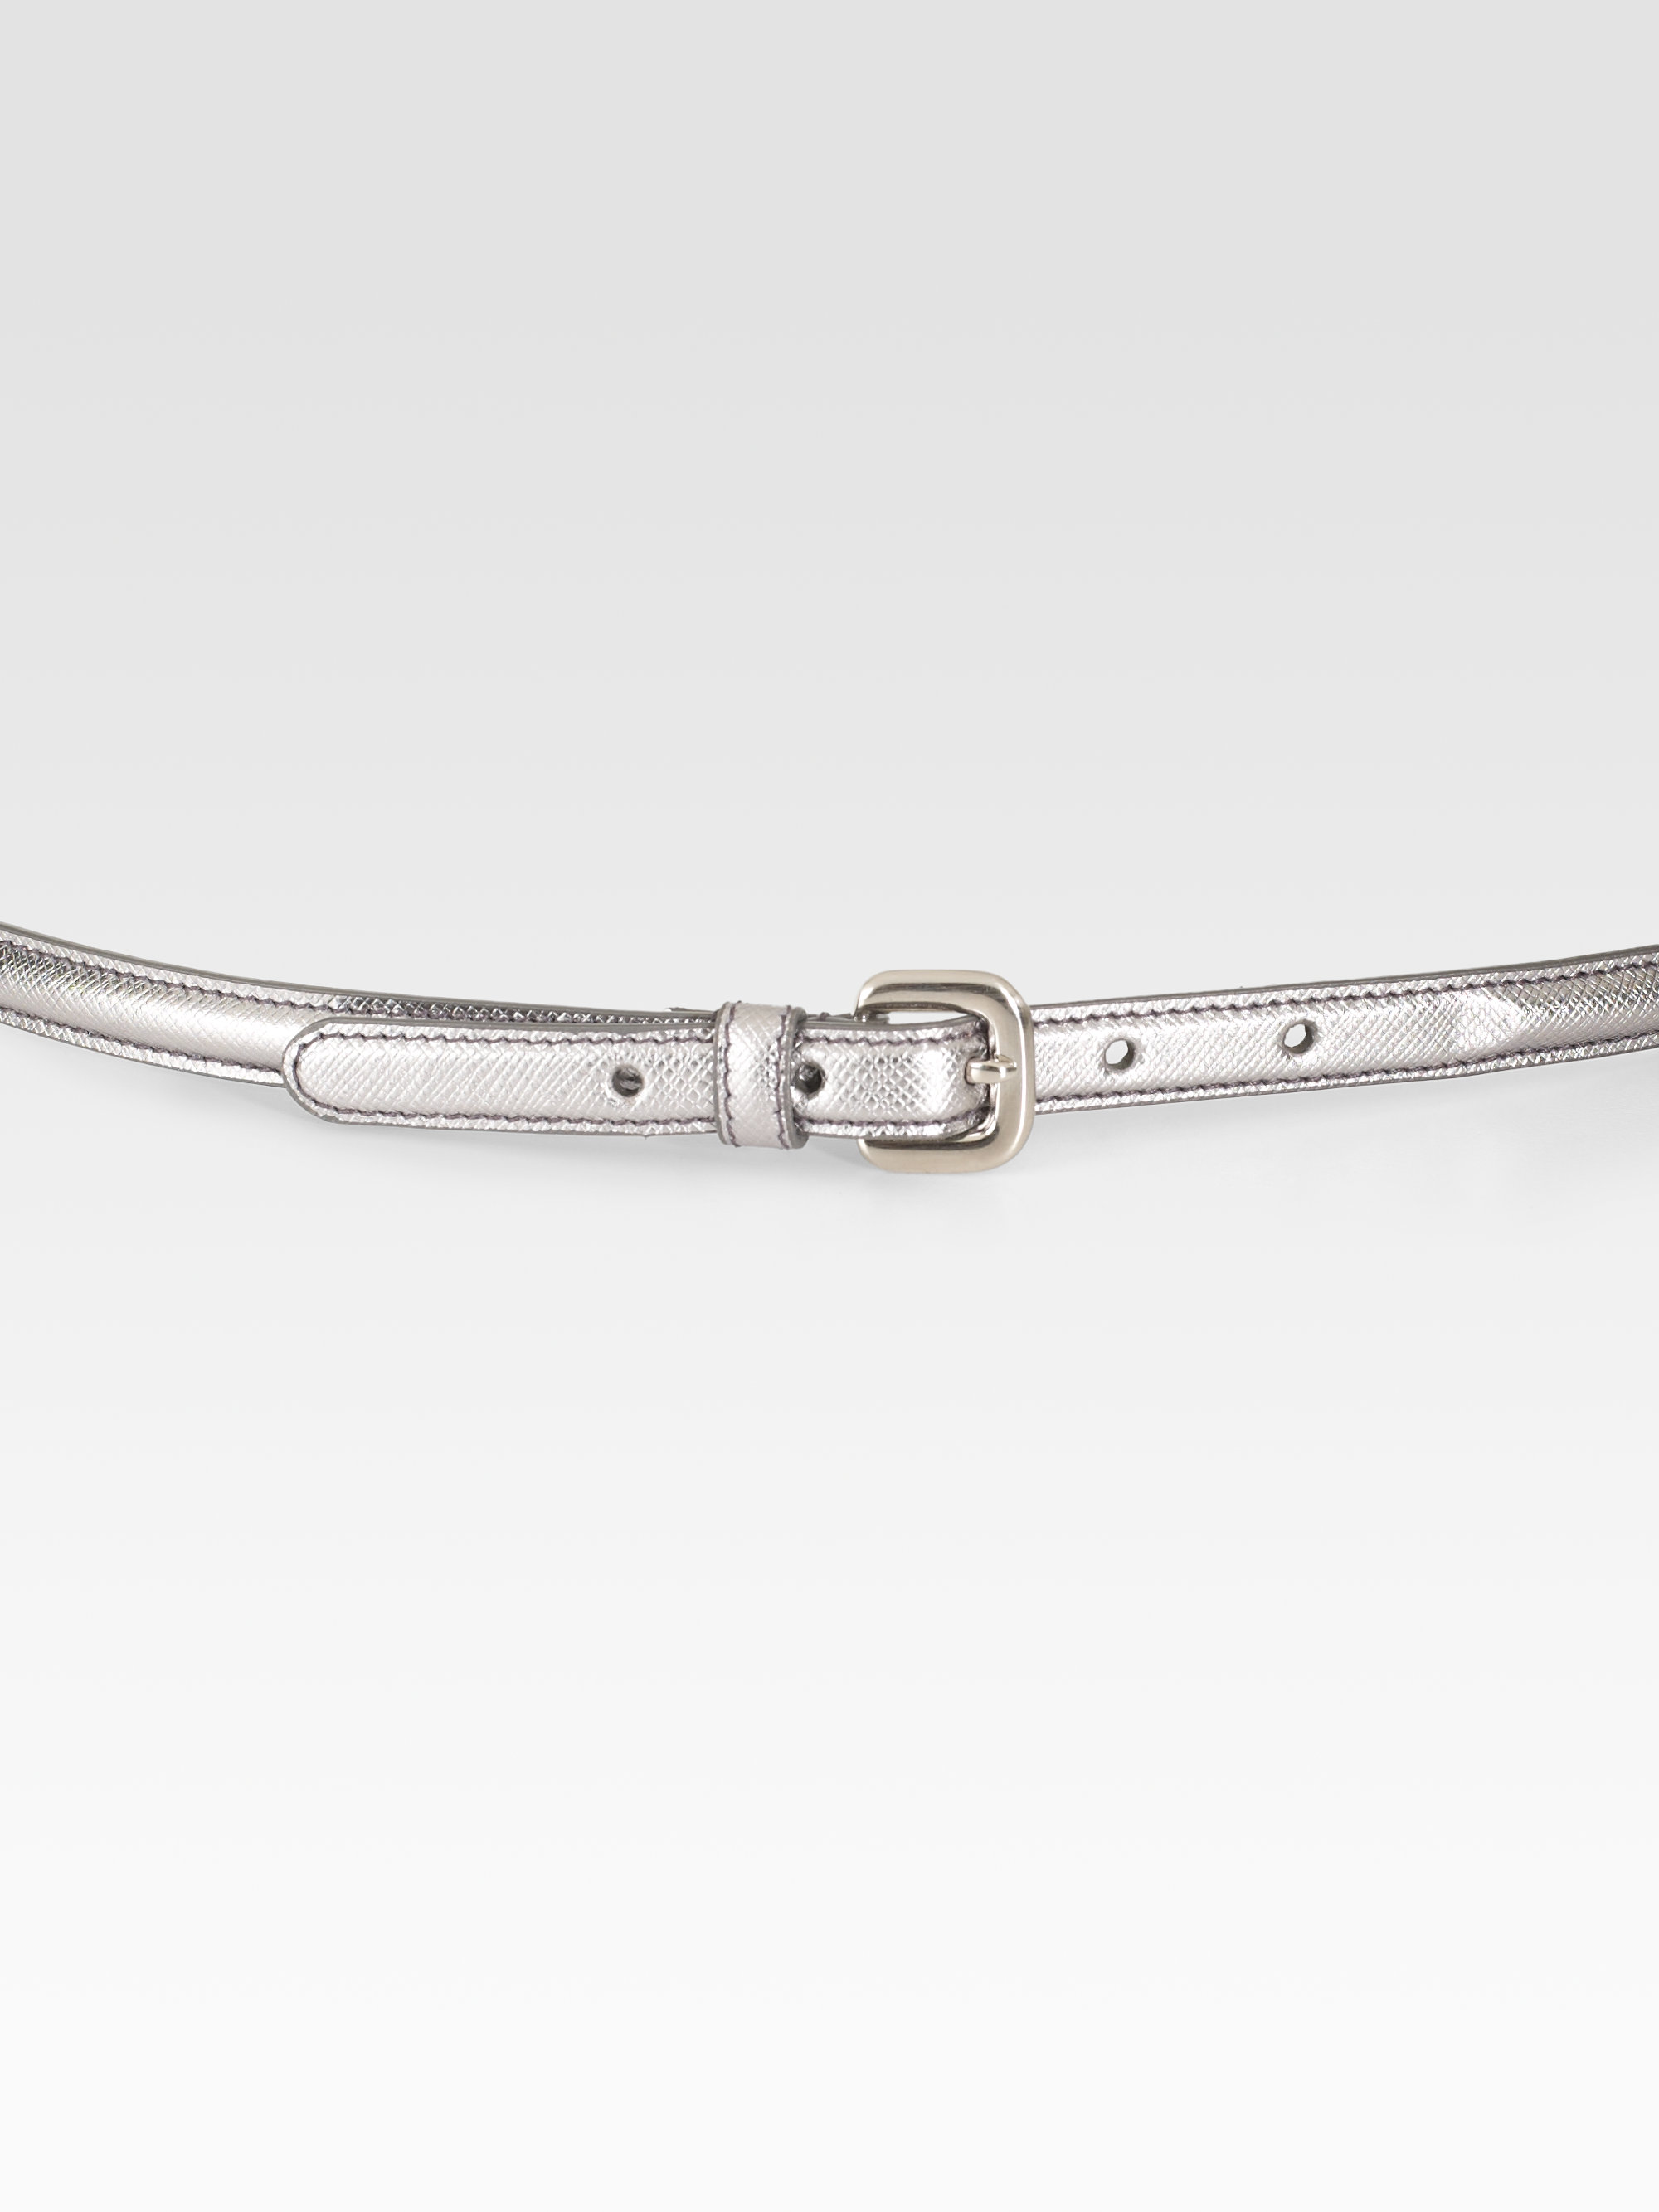 Prada Saffiano Leather Bow Belt in Silver | Lyst